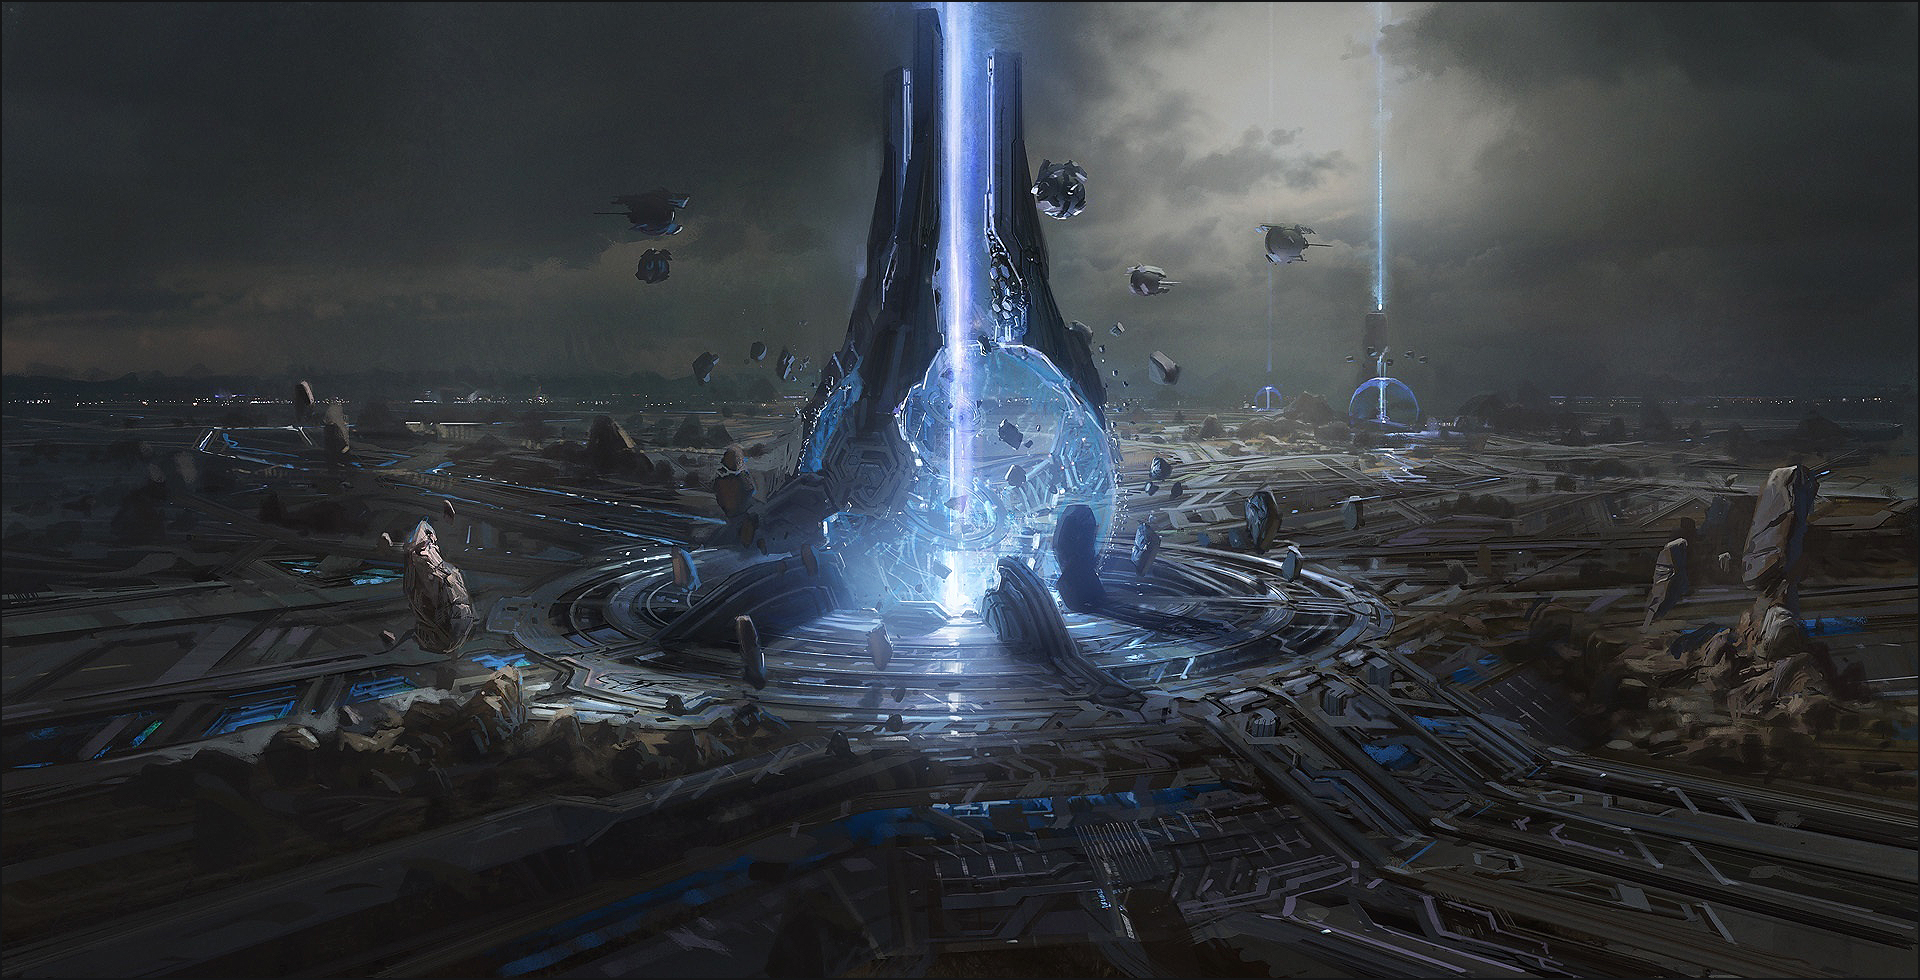 Halo 4 desktop images halo diehards - Halo 4 pictures ...